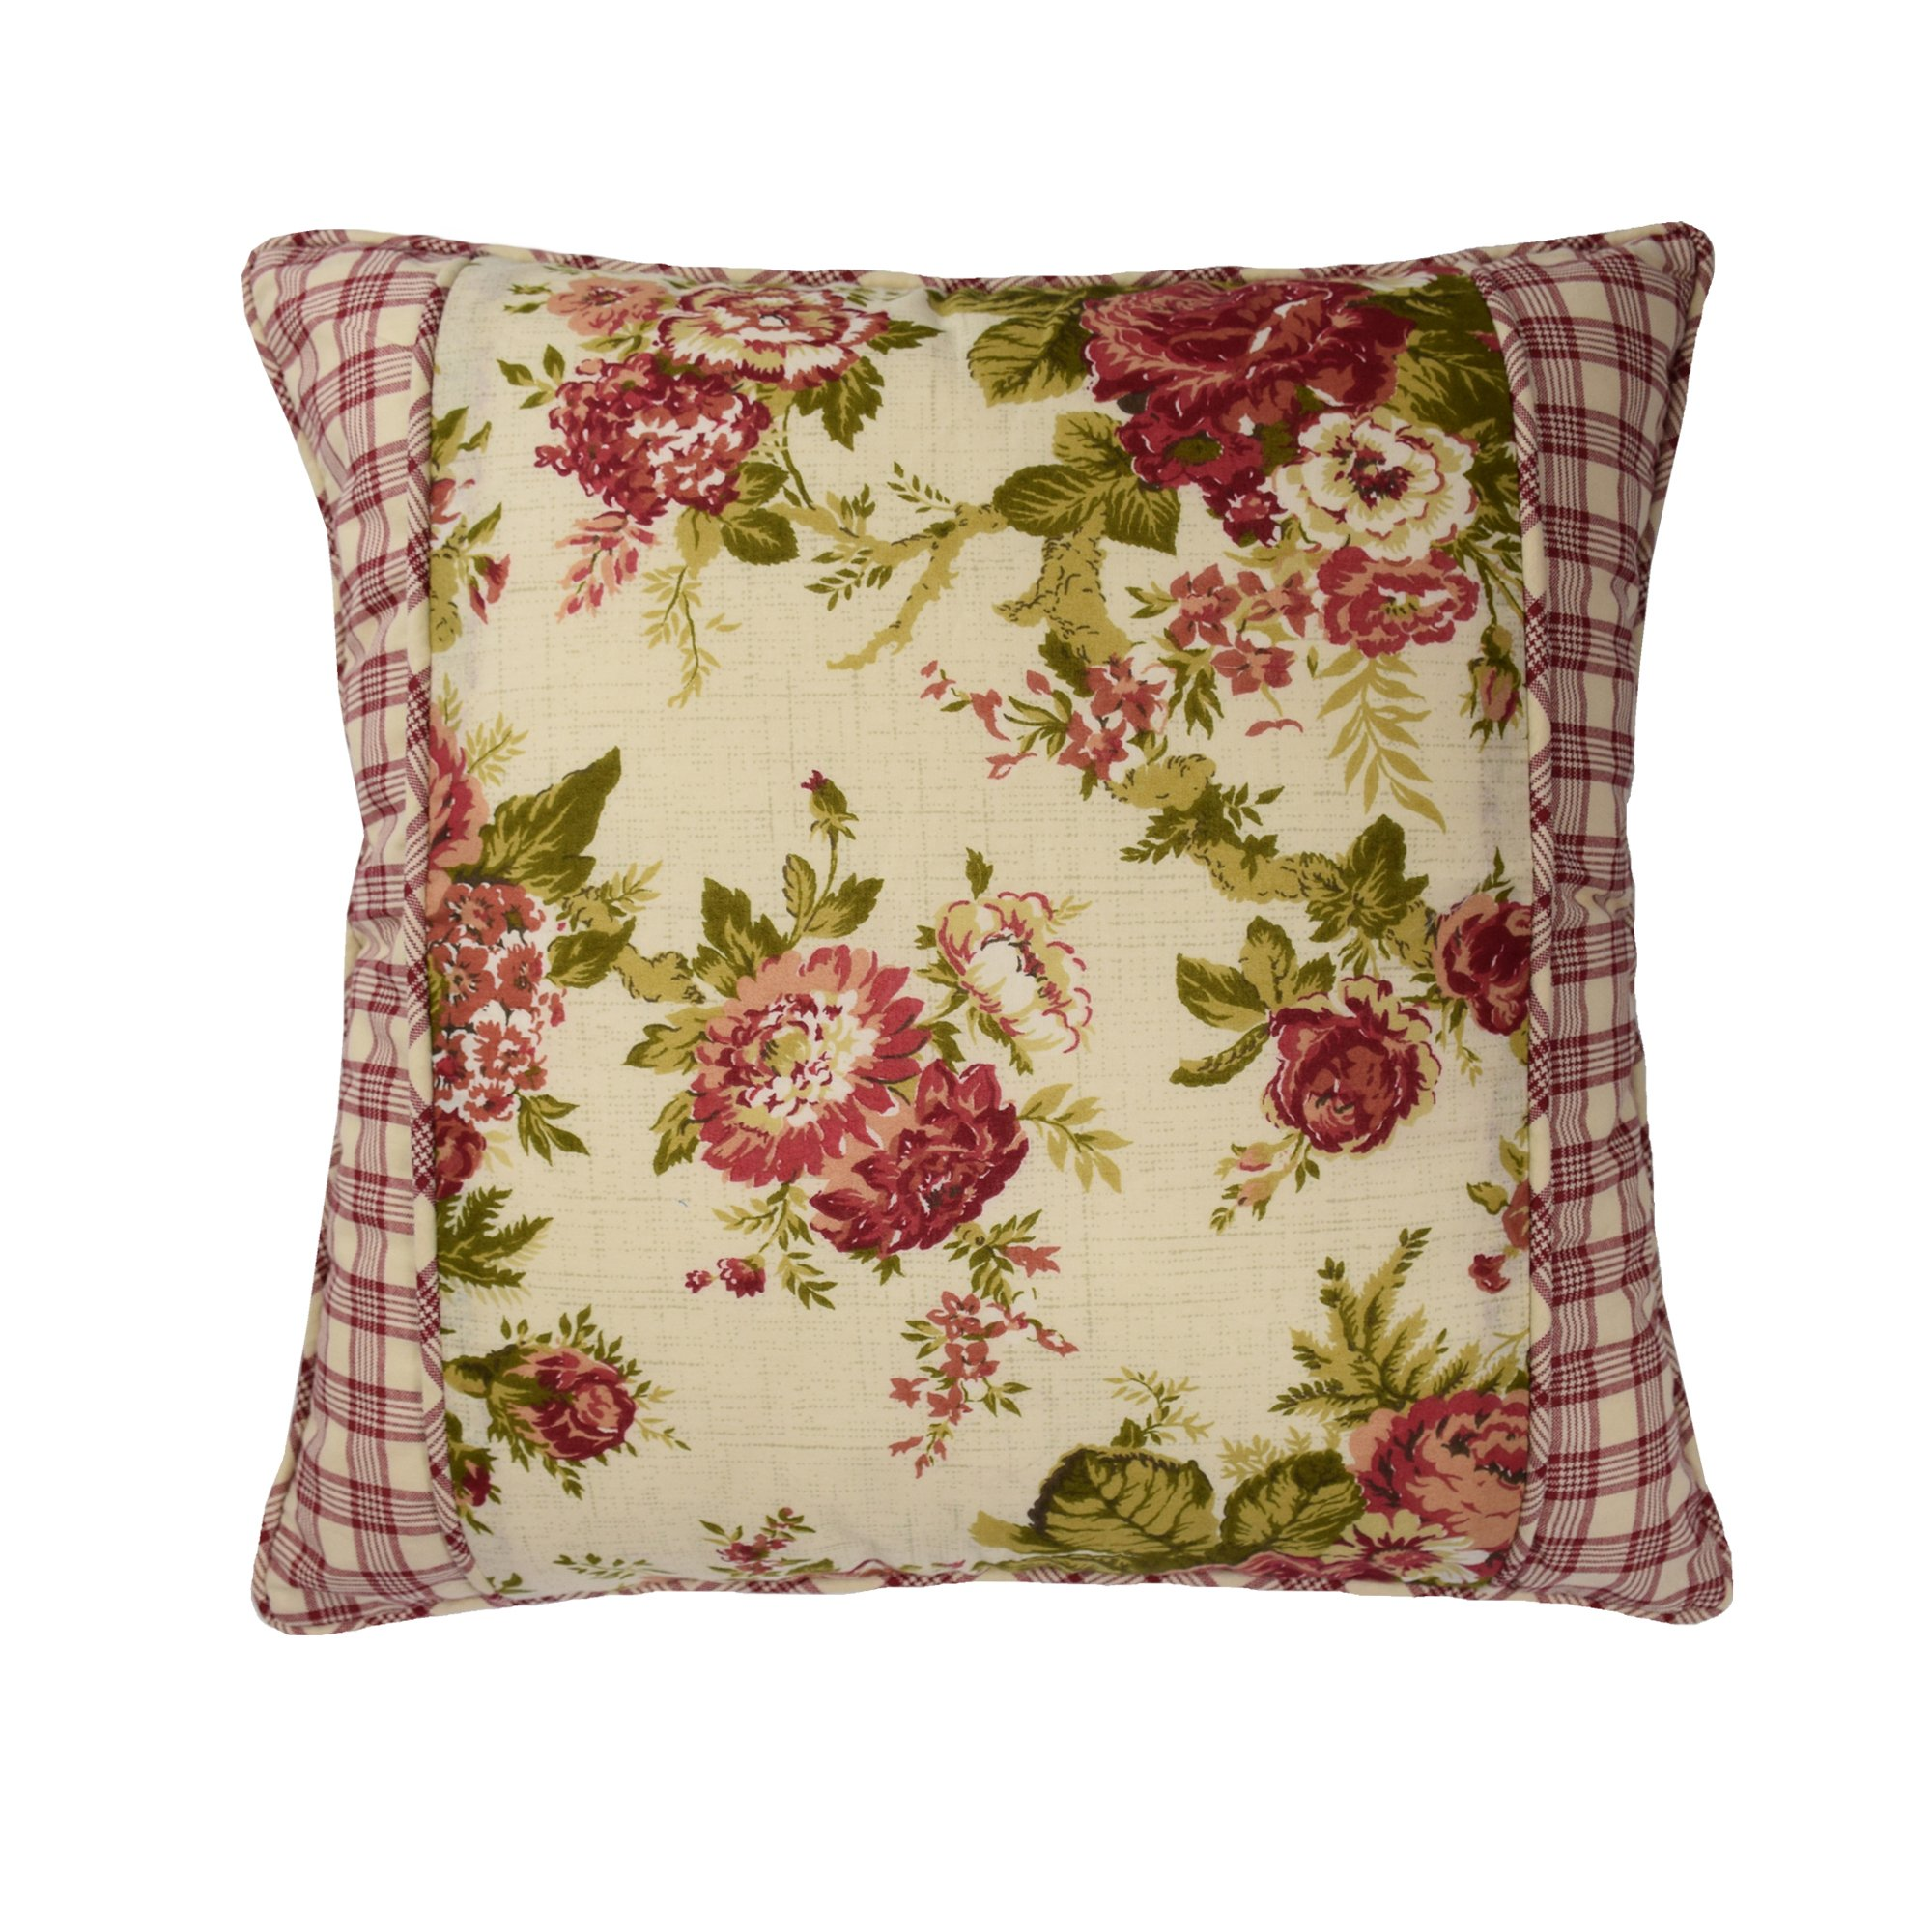 Waverly 14772018X018TSN Norfolk 18-Inch by 18-Inch Square Decorative Pillow, Tea Stain